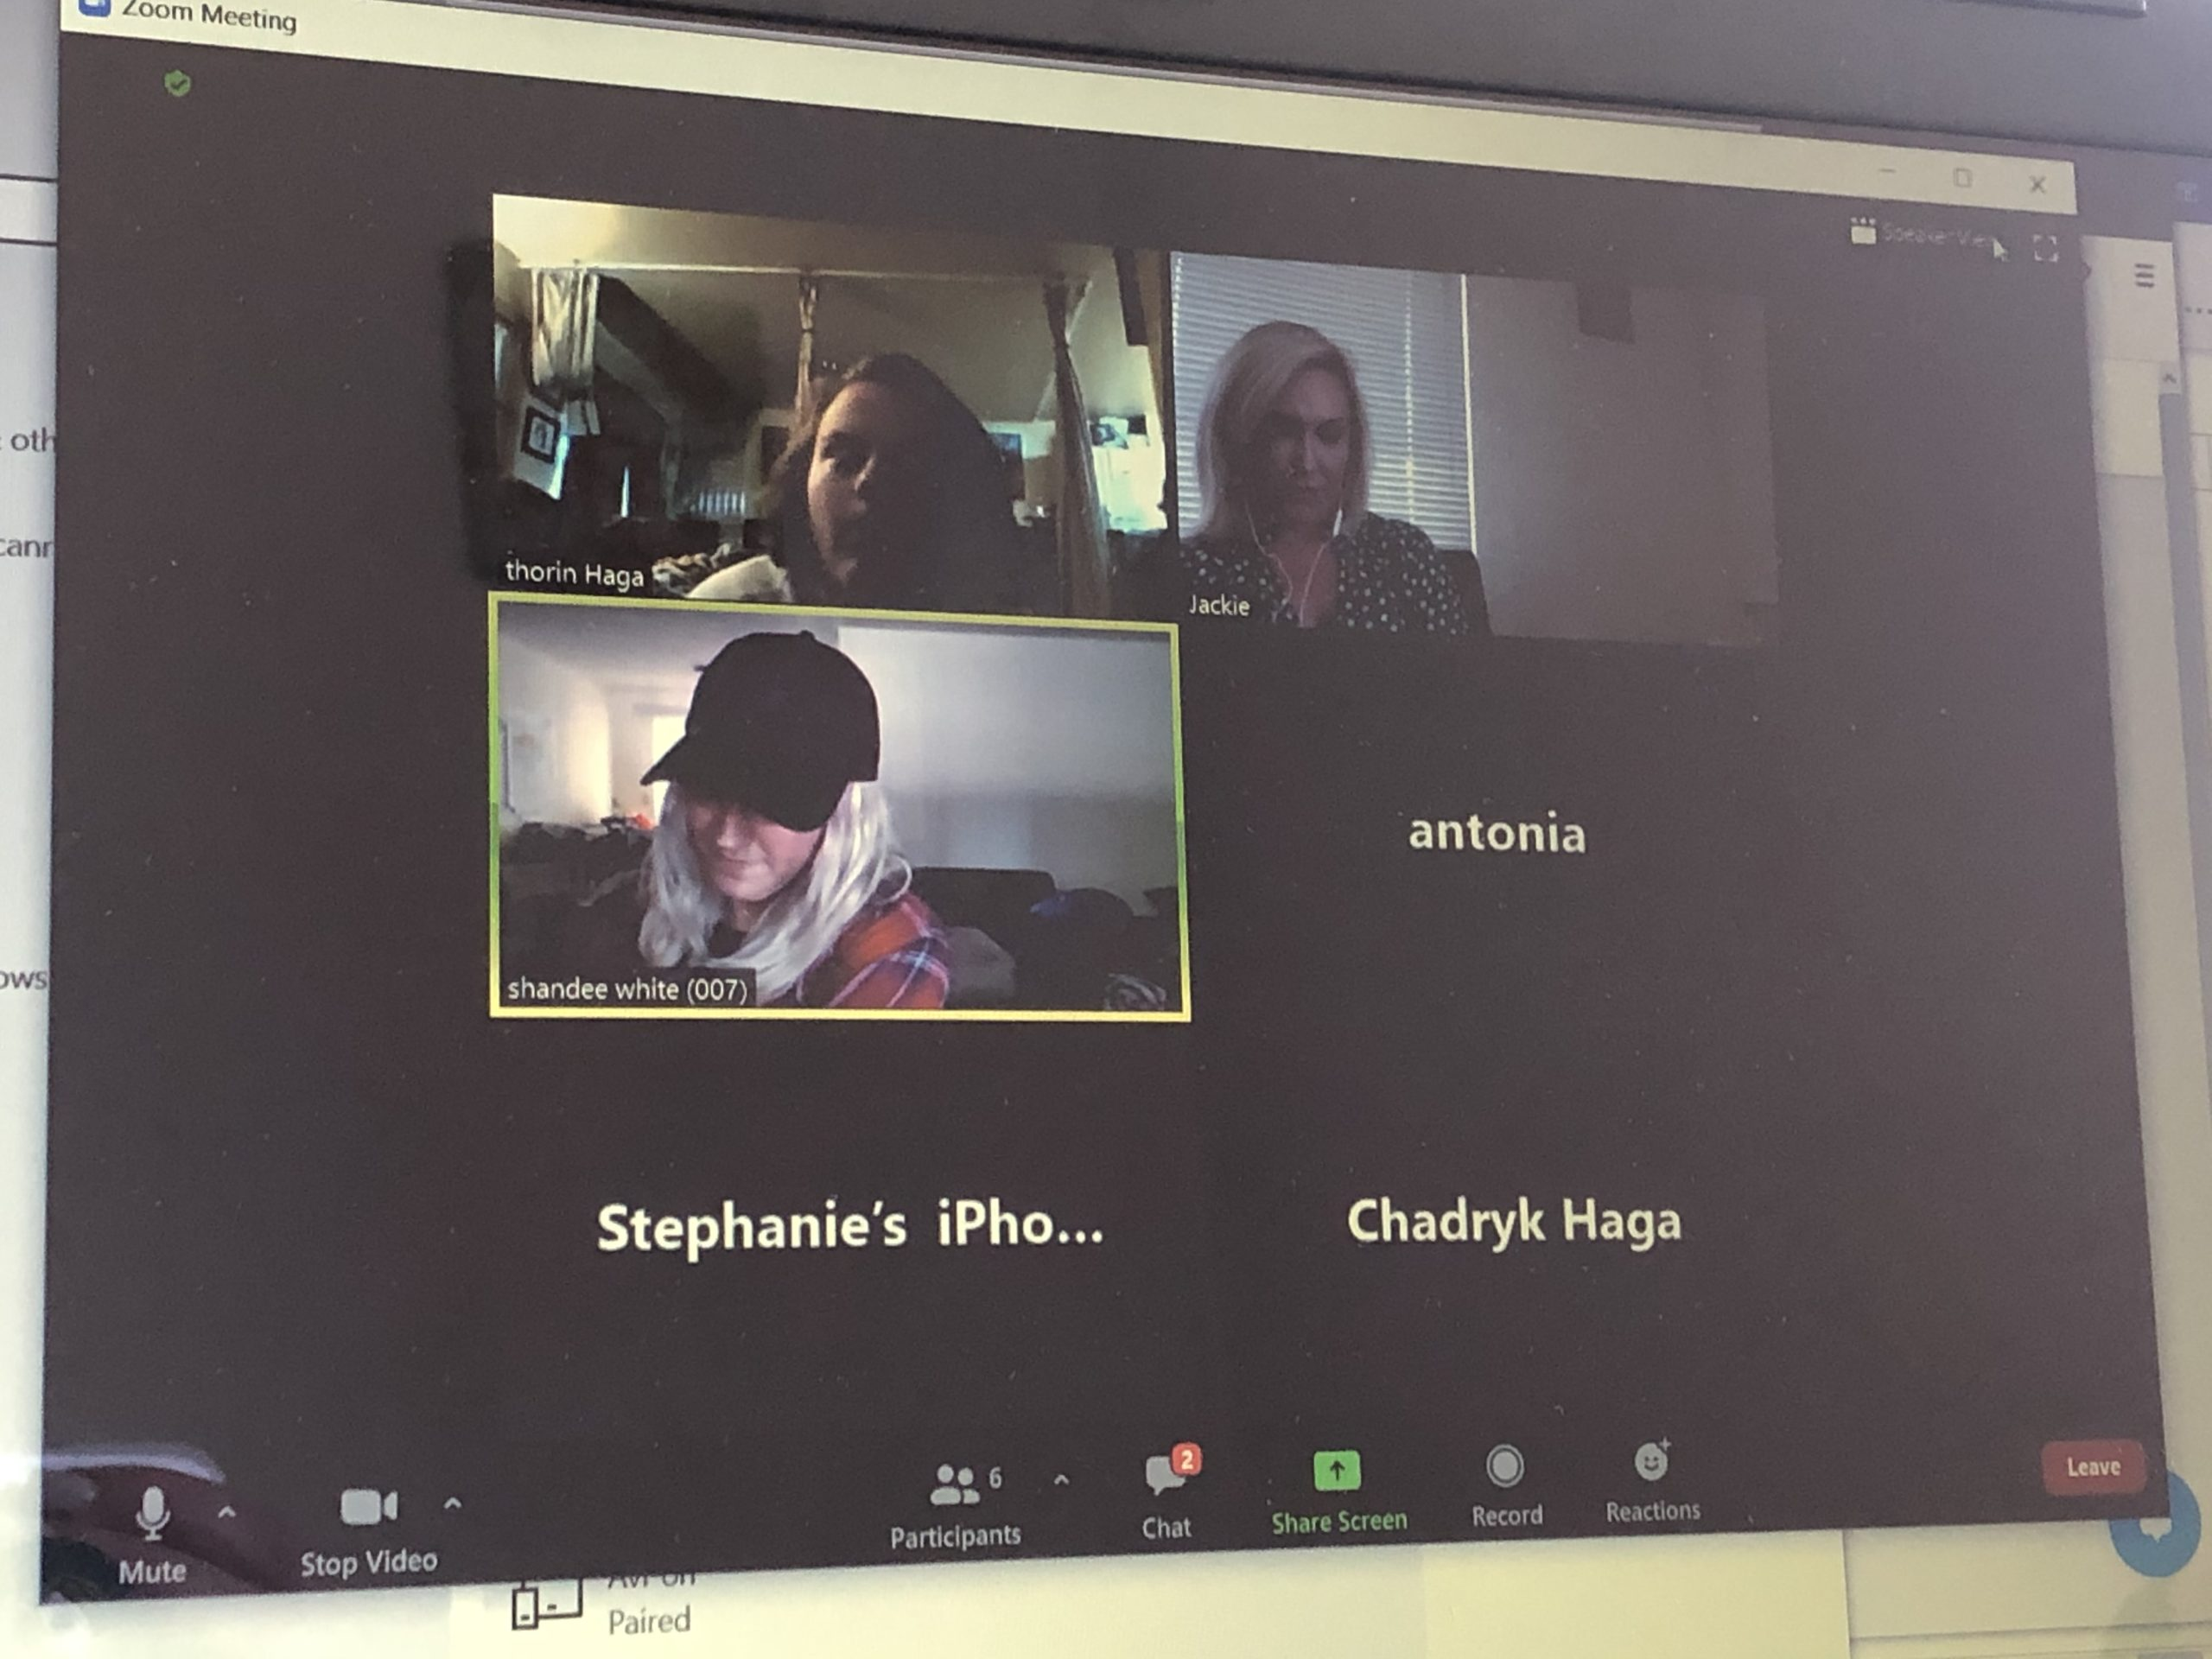 Staying Connected Virtually During Covid-19